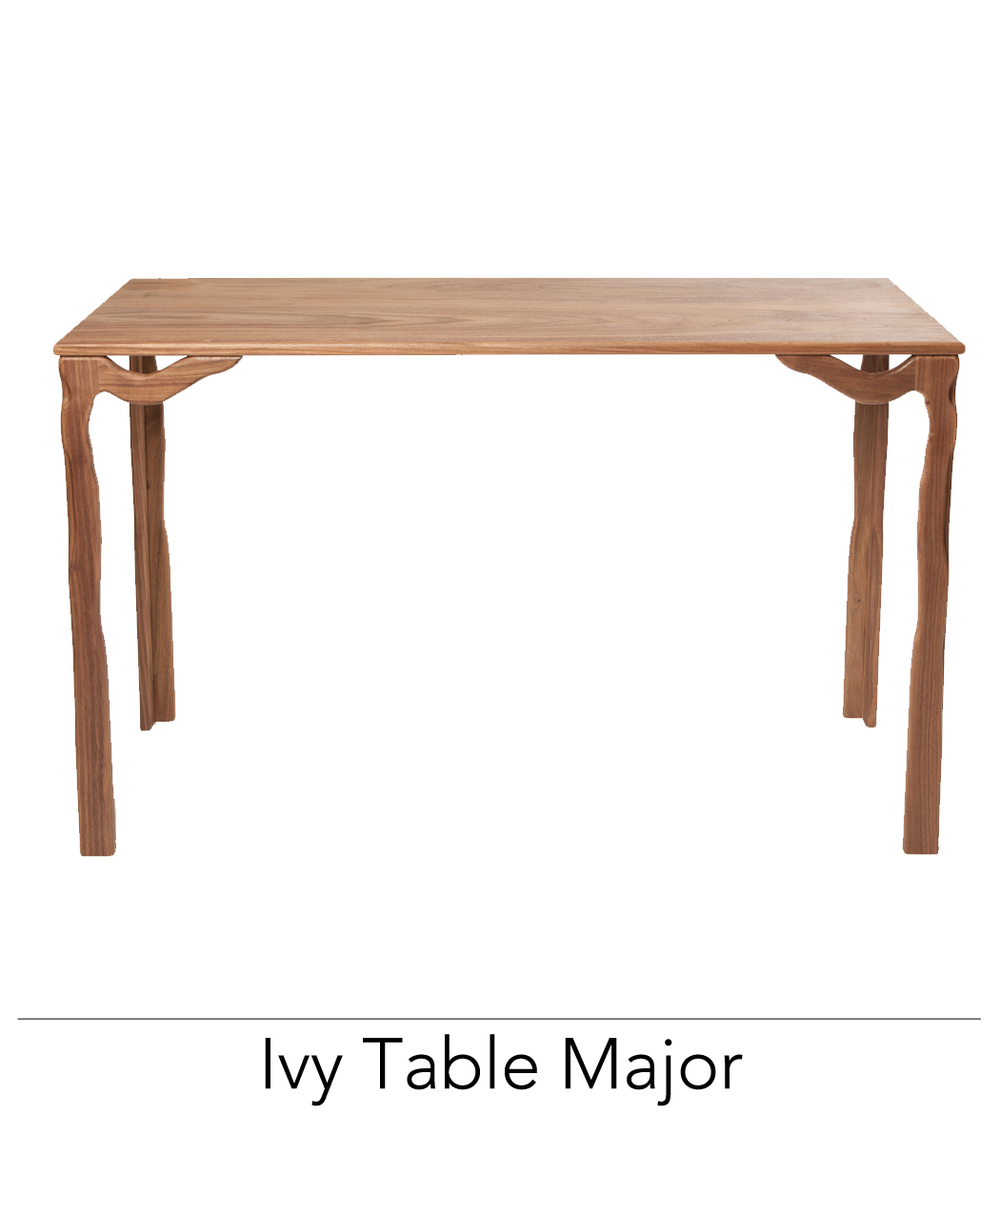 Ivy Table Major Front New.jpg